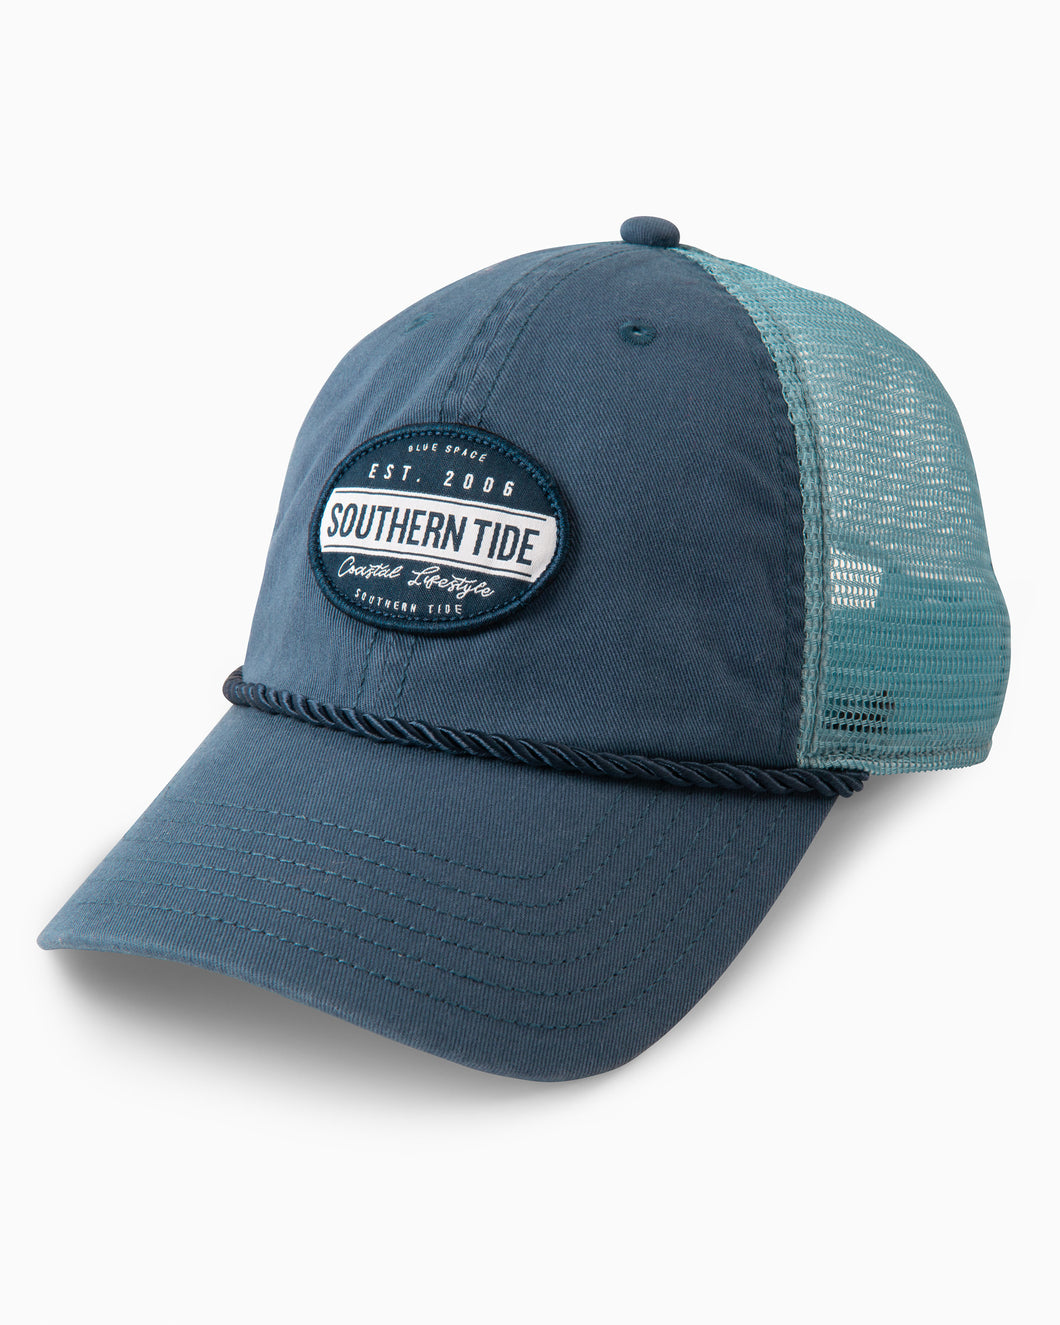 Southern Tide Coastal Lifestyle Patch Trucker Hat